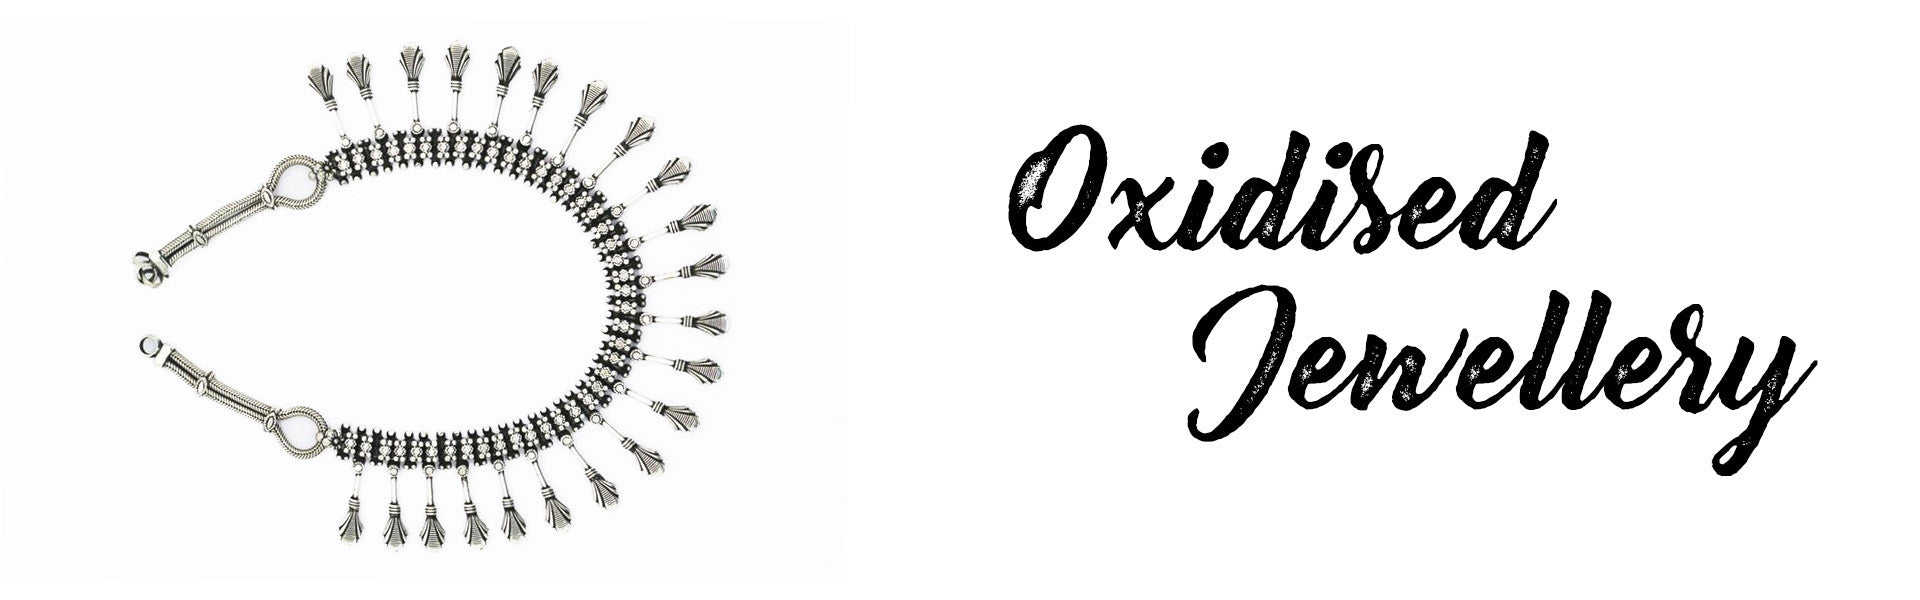 Oxidised Jewellery | Shop Online Fashion Jewellery